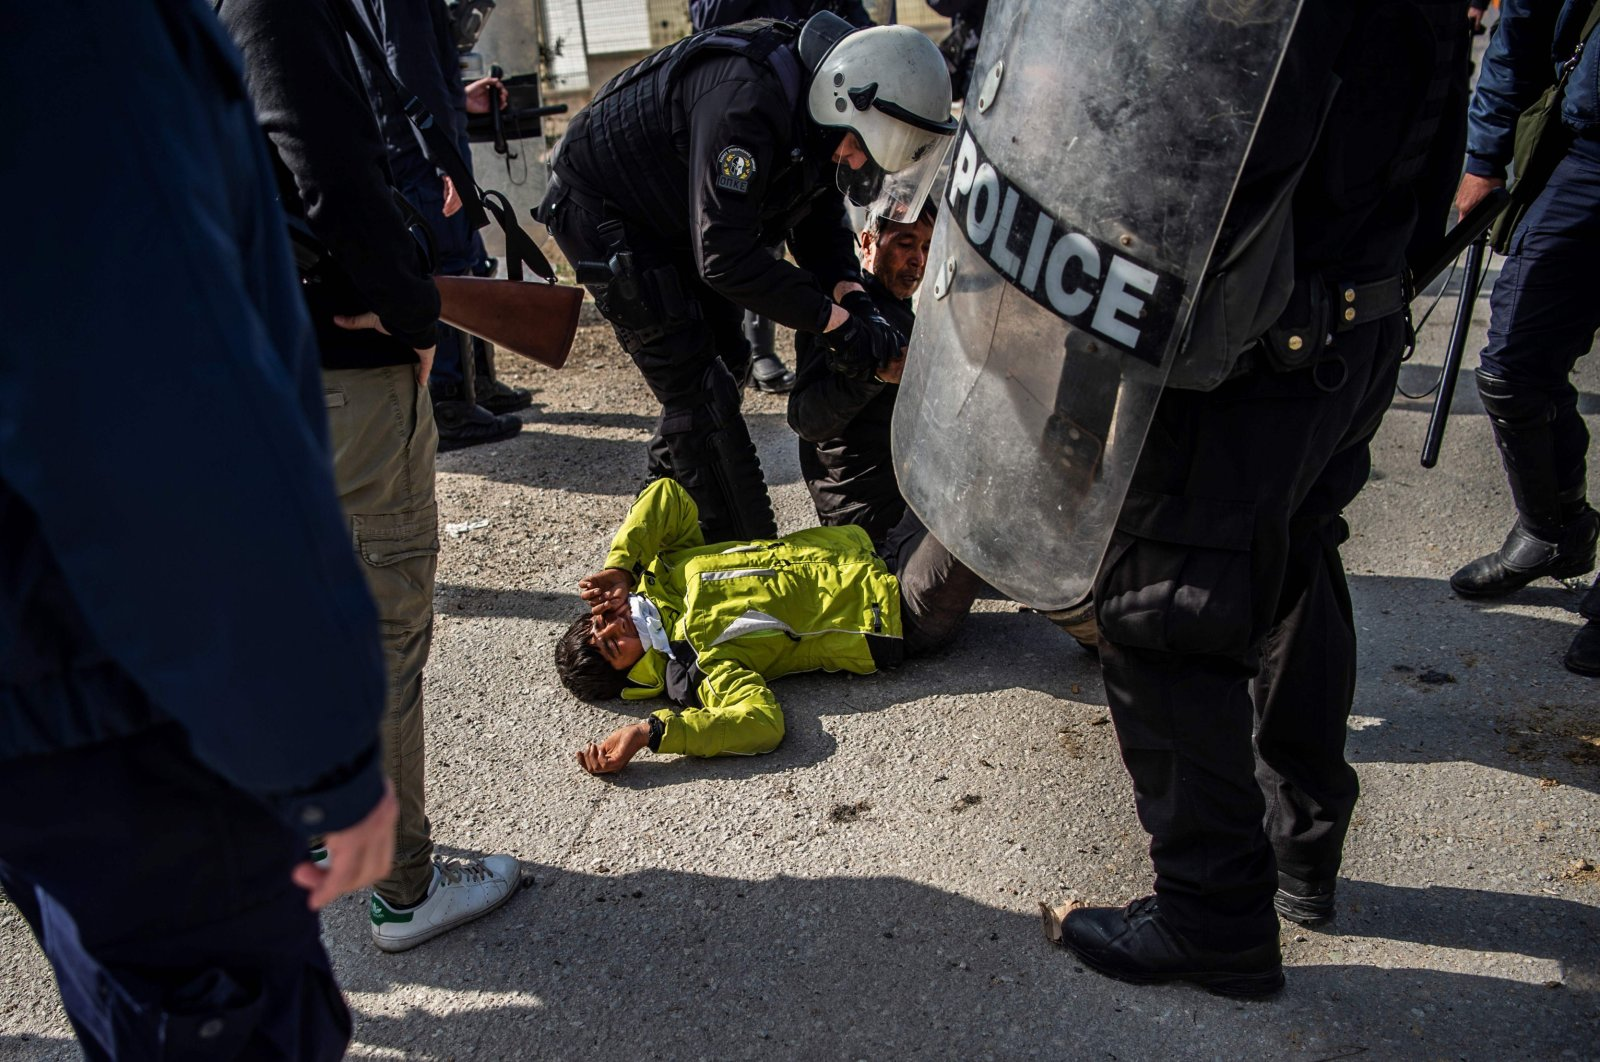 Riot police detain a migrant during clashes near the Moria camp for refugees and migrants, on the island of Lesbos, Greece, March 2, 2020. (AFP Photo)